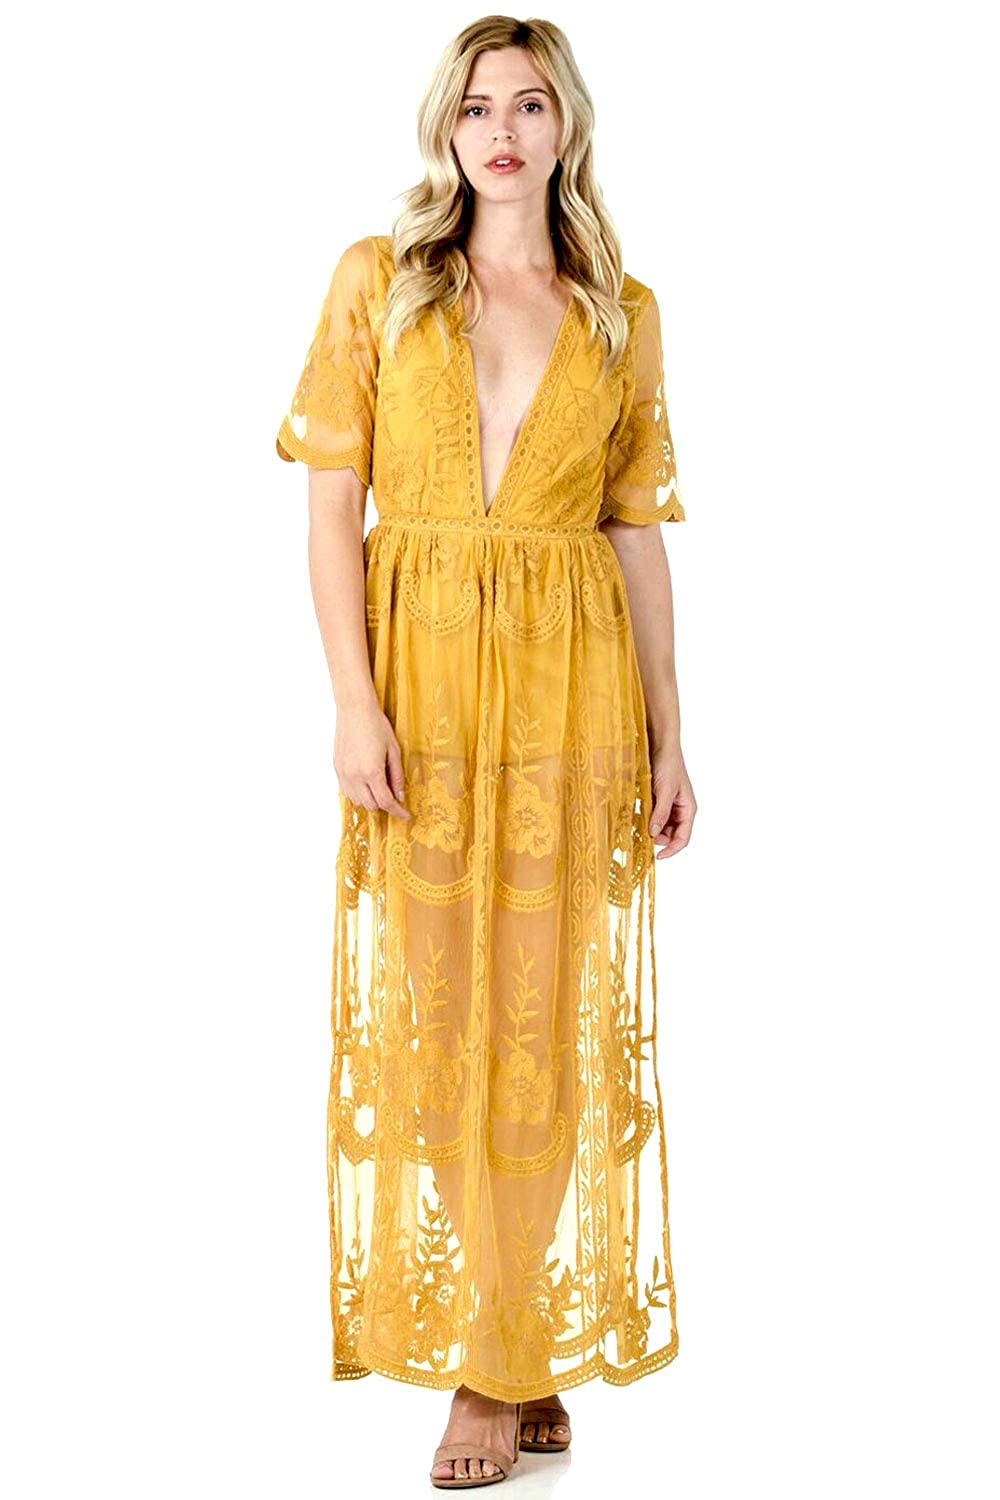 a48aa69712d Top 10 wholesale Mustard Yellow Evening Dress - Chinabrands.com